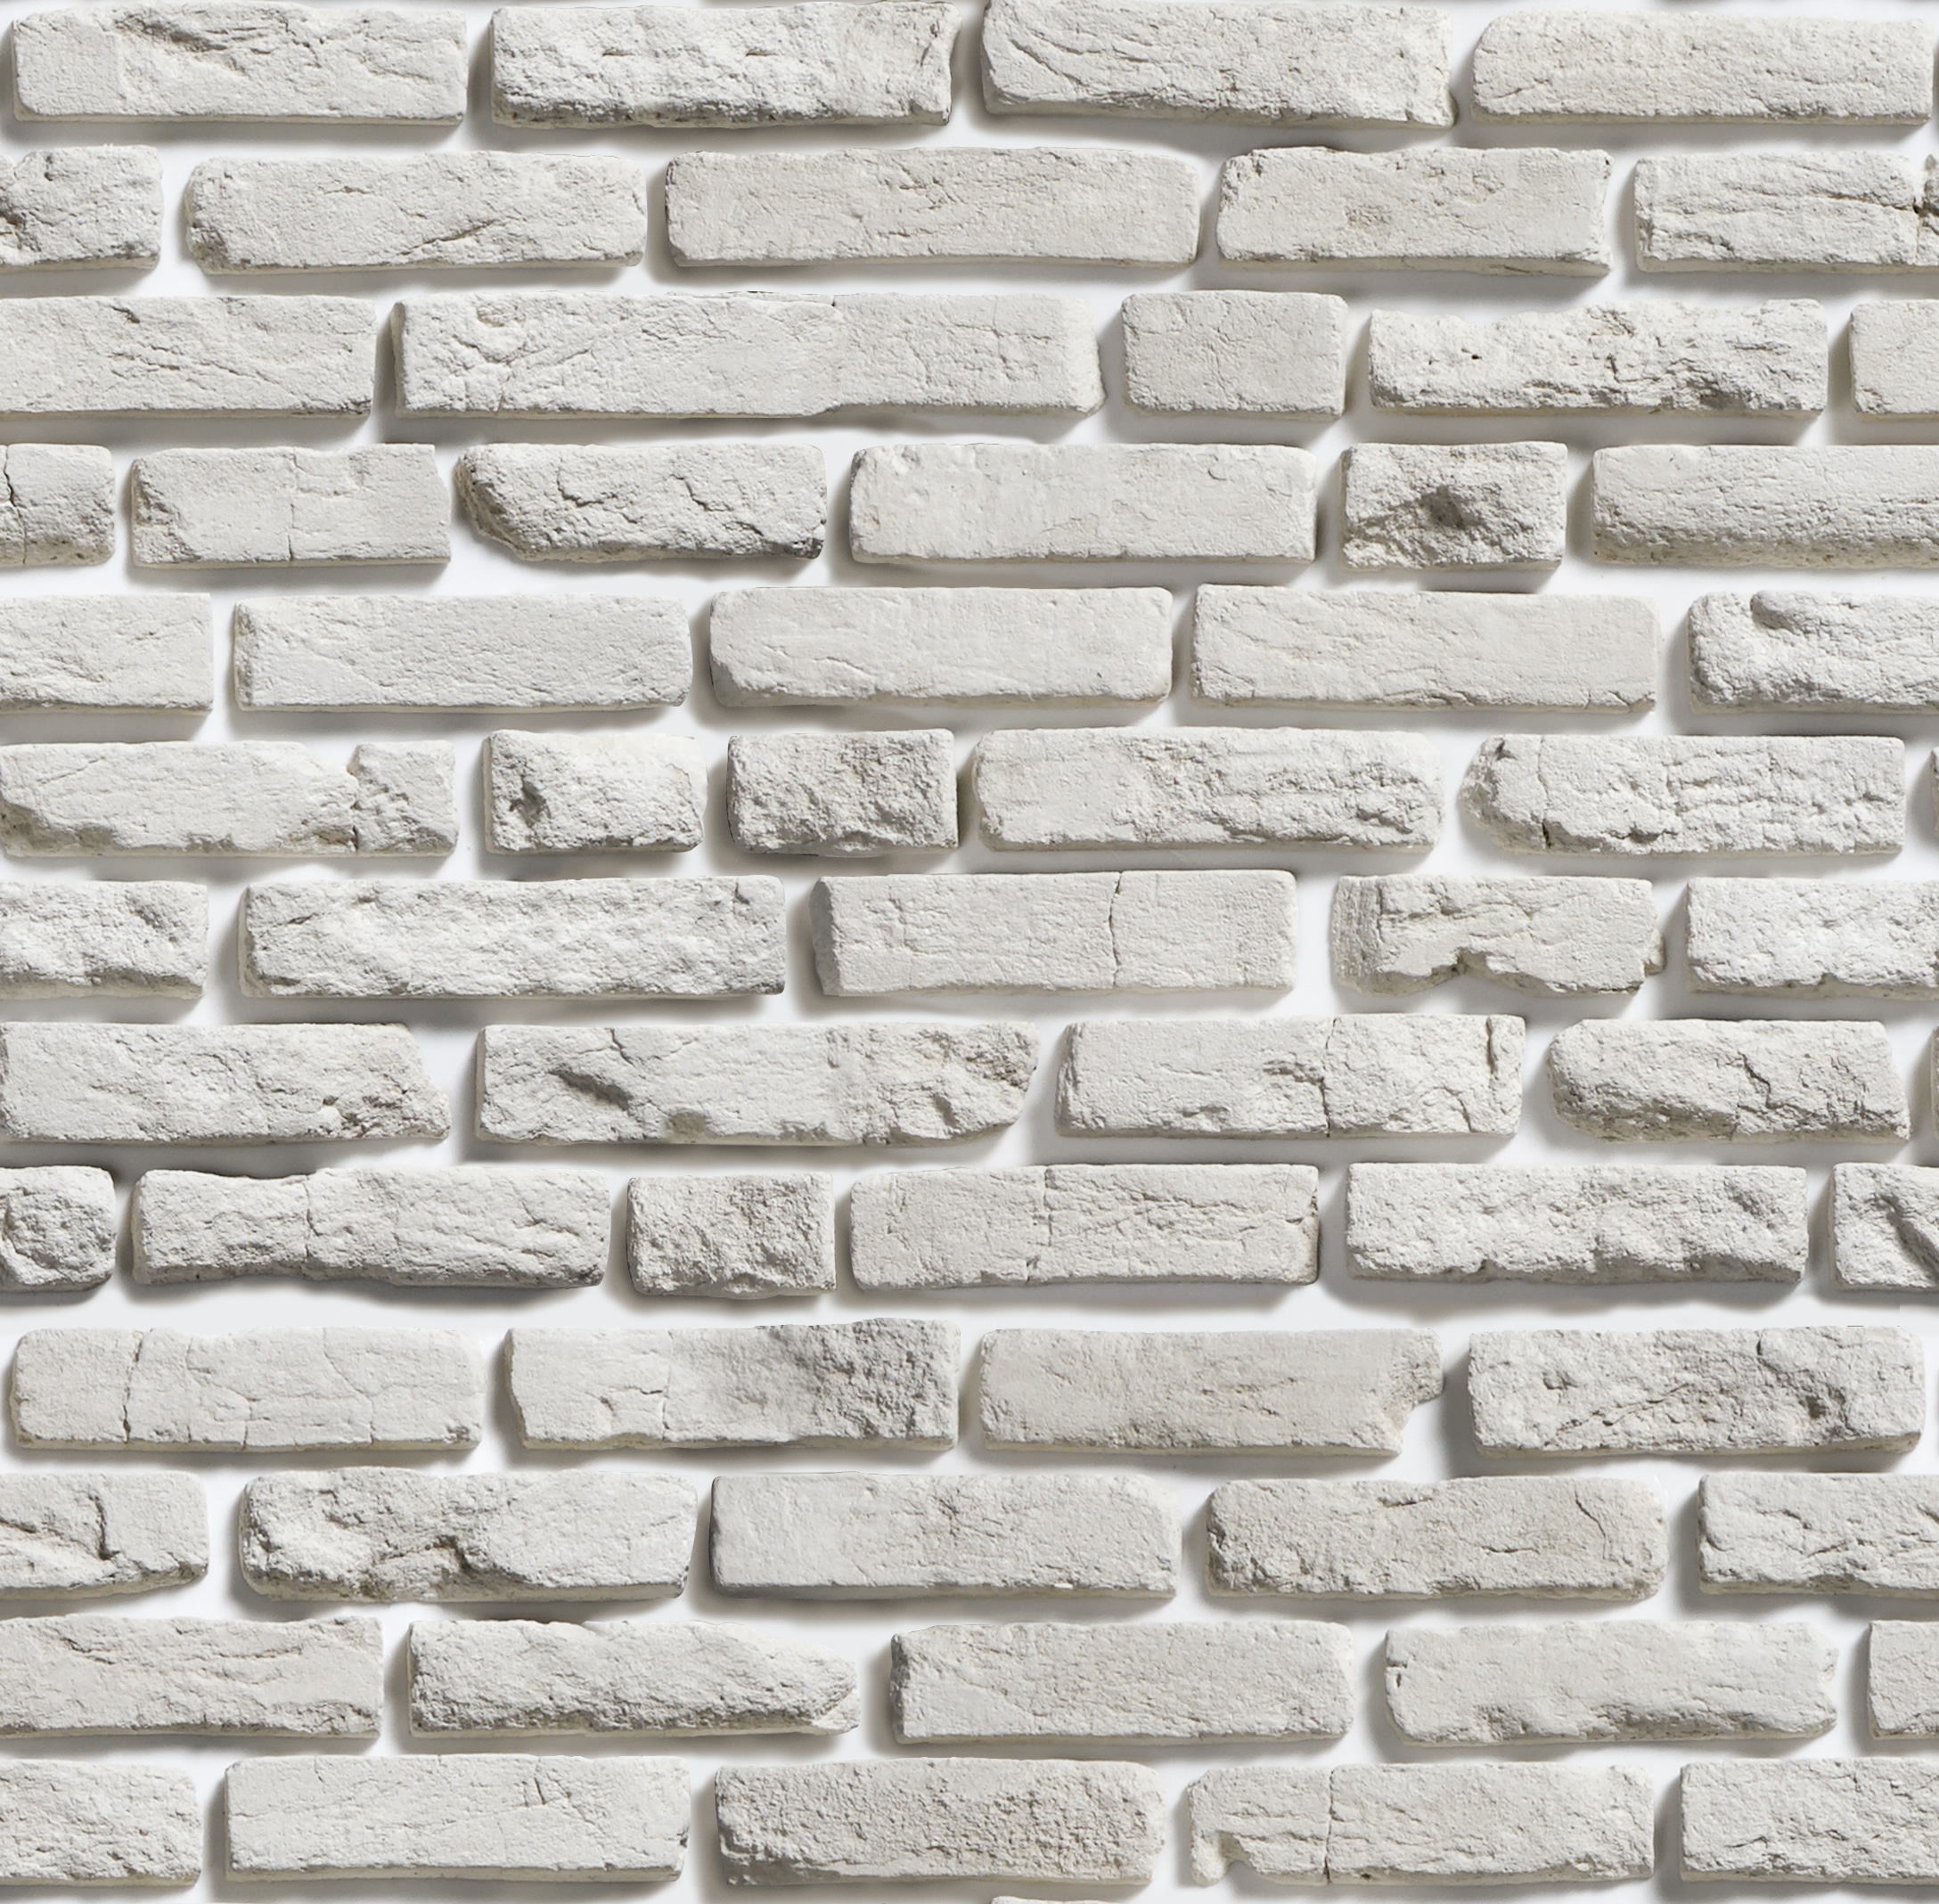 bricks, texture, download photo, background